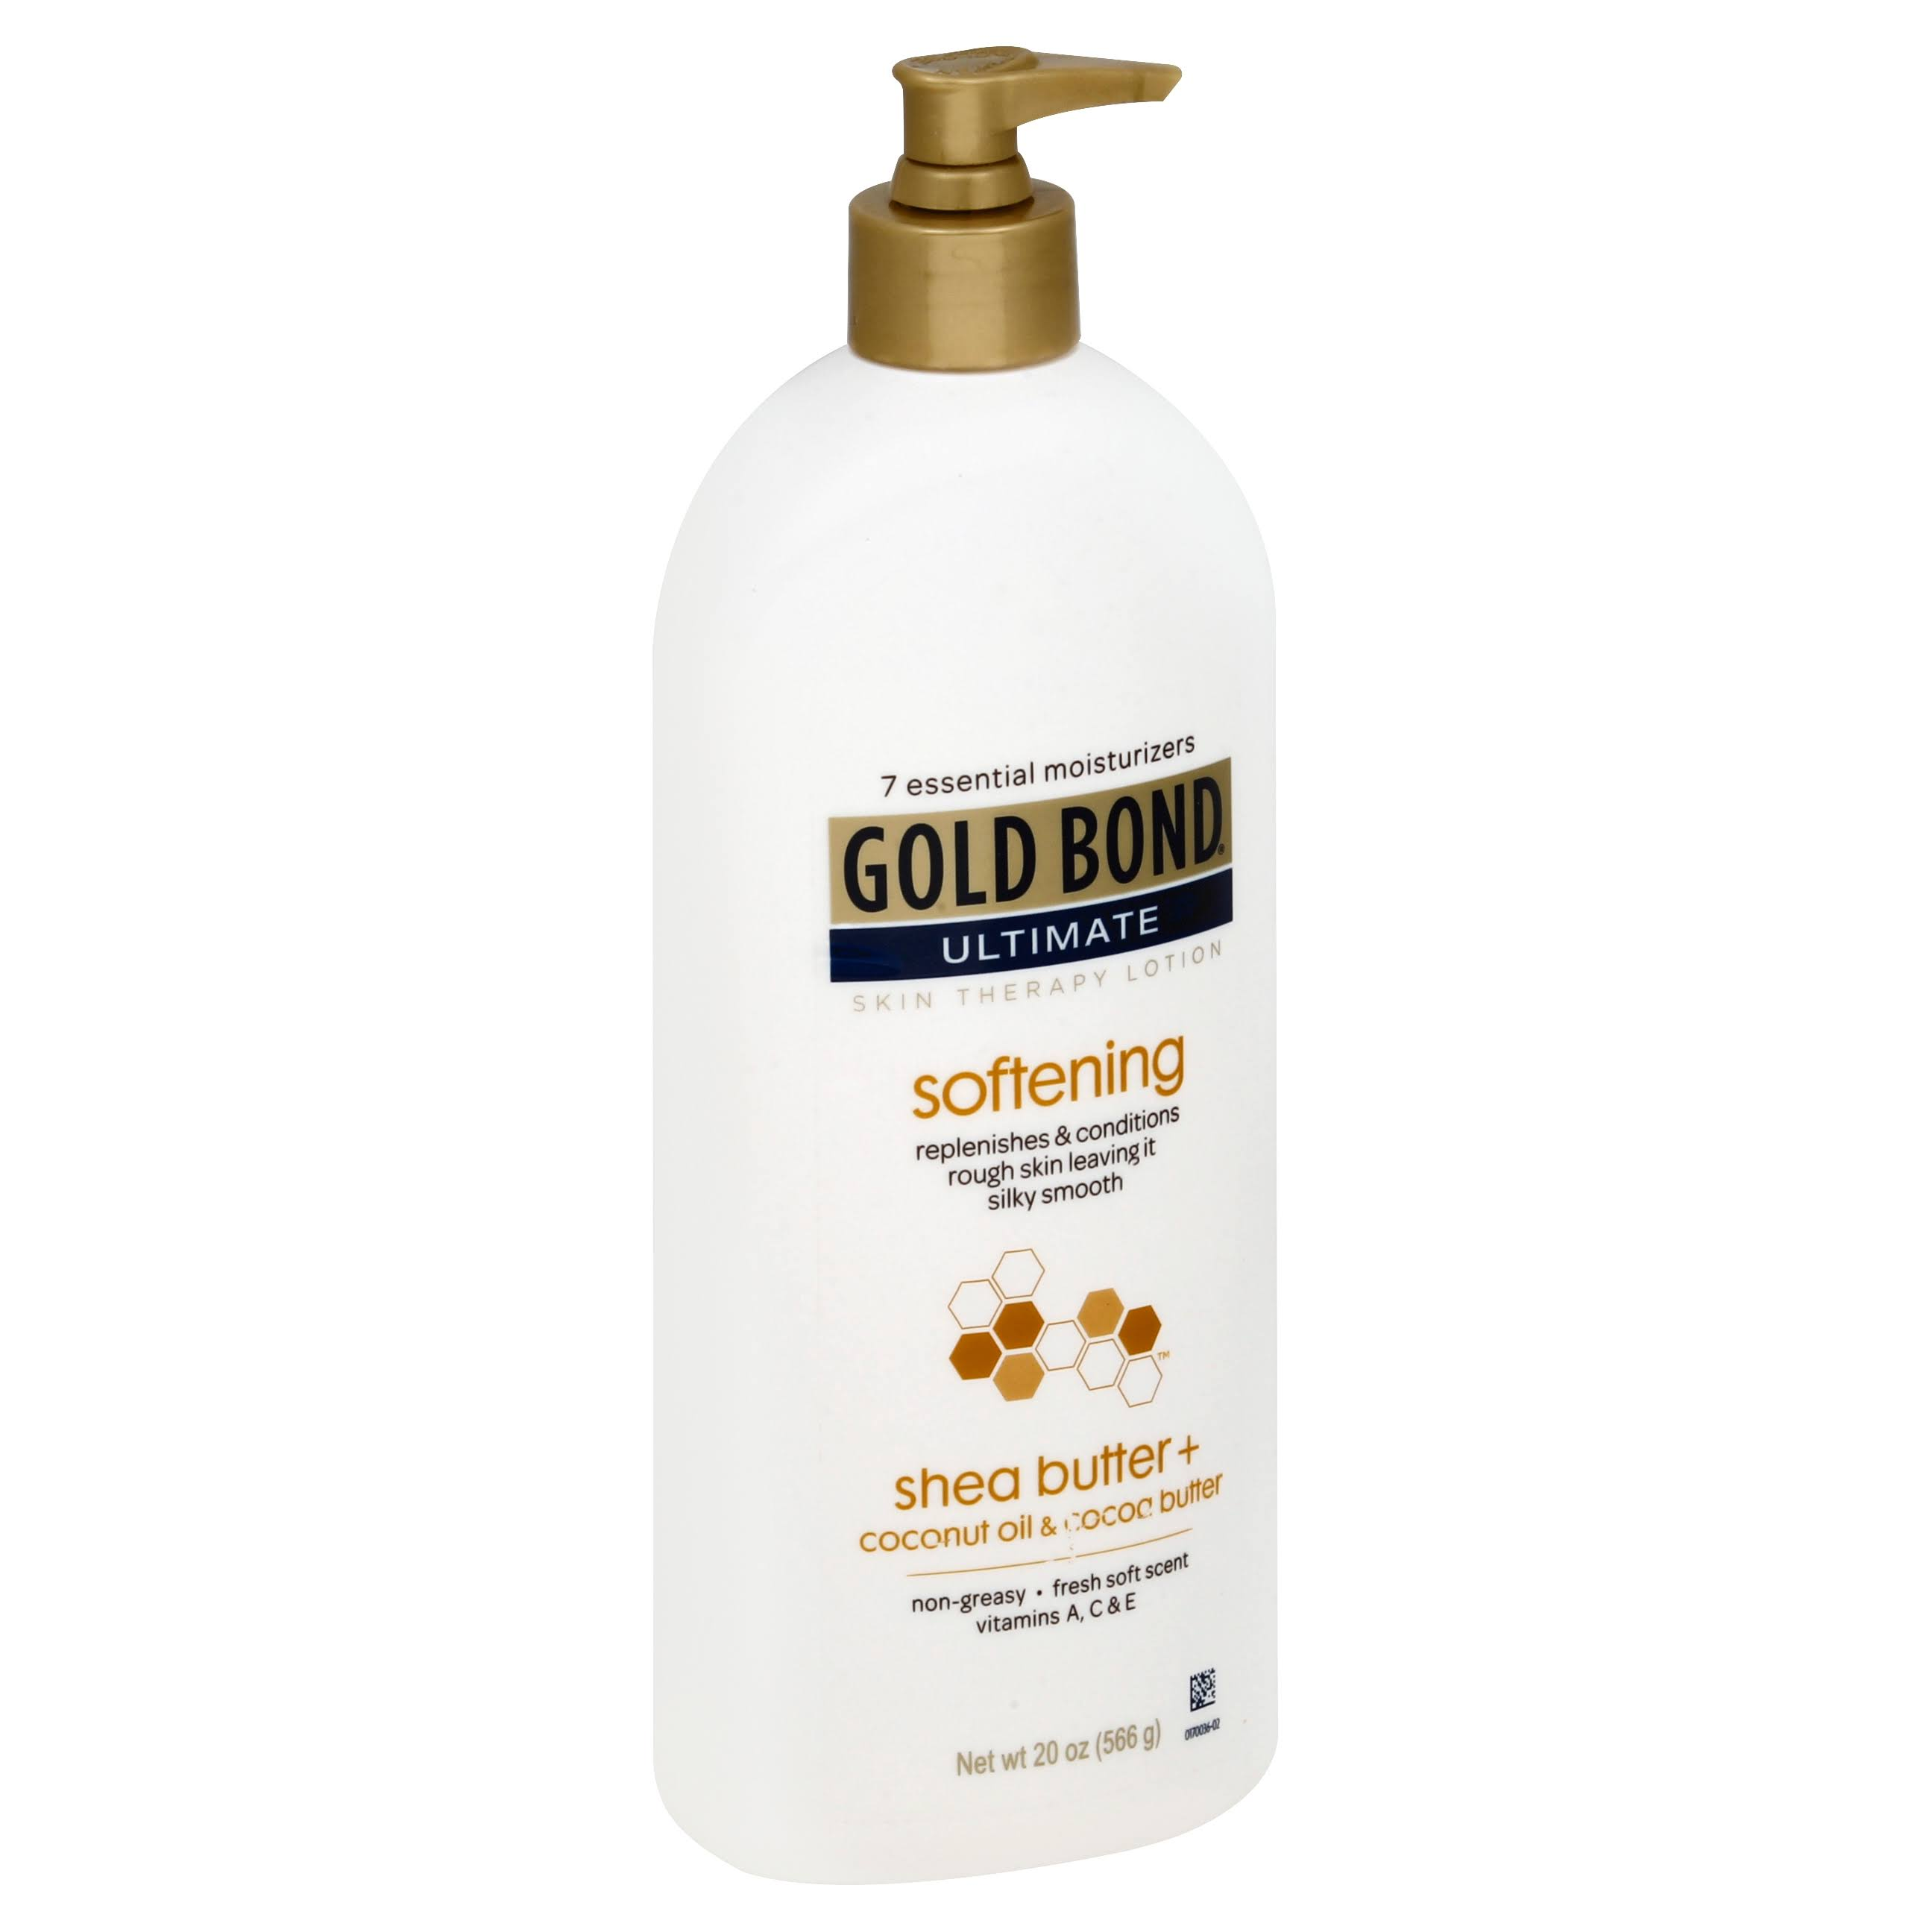 Gold Bond Ultimate Softening Skin Therapy Lotion - with Shea Butter, 20oz